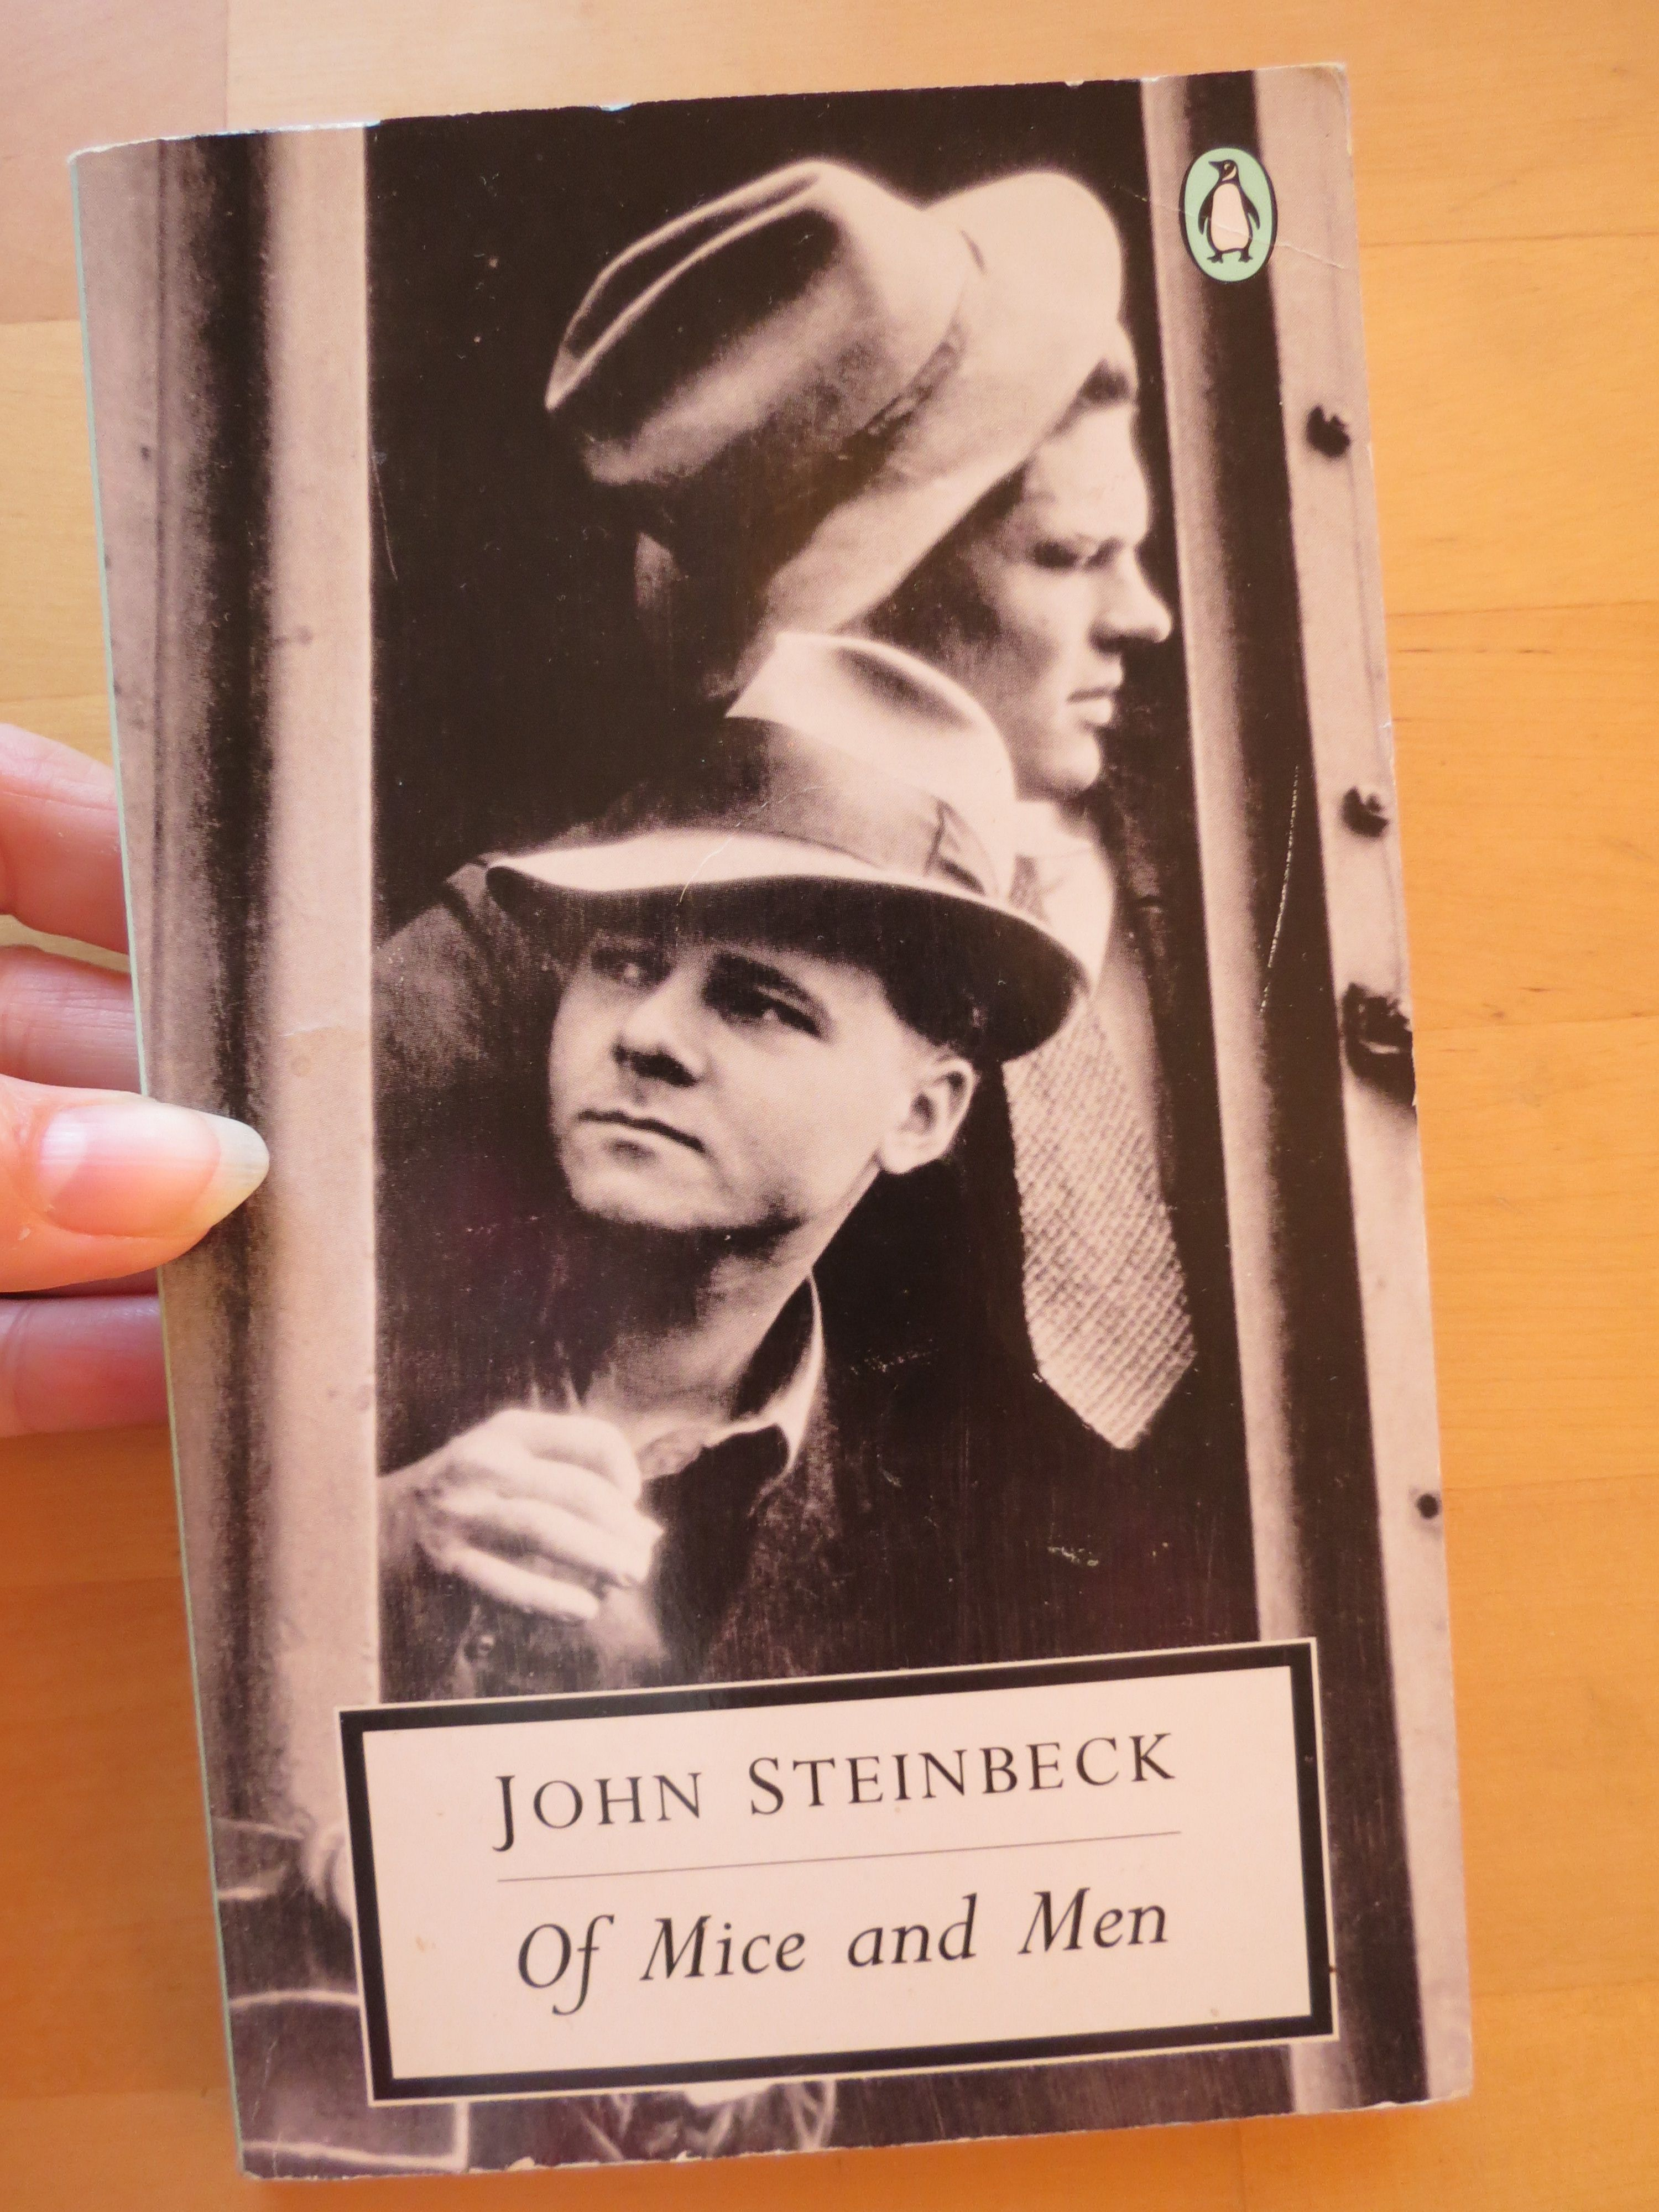 """john steinbeck of mice and men Of mice and men represents an experiment in form, which steinbeck described as """"a kind of playable novel, written in a novel form but so scened and set that it can be played as it stands"""" a rarity in american letters, it achieved remarkable success as a novel, a broadway play, and three acclaimed films."""